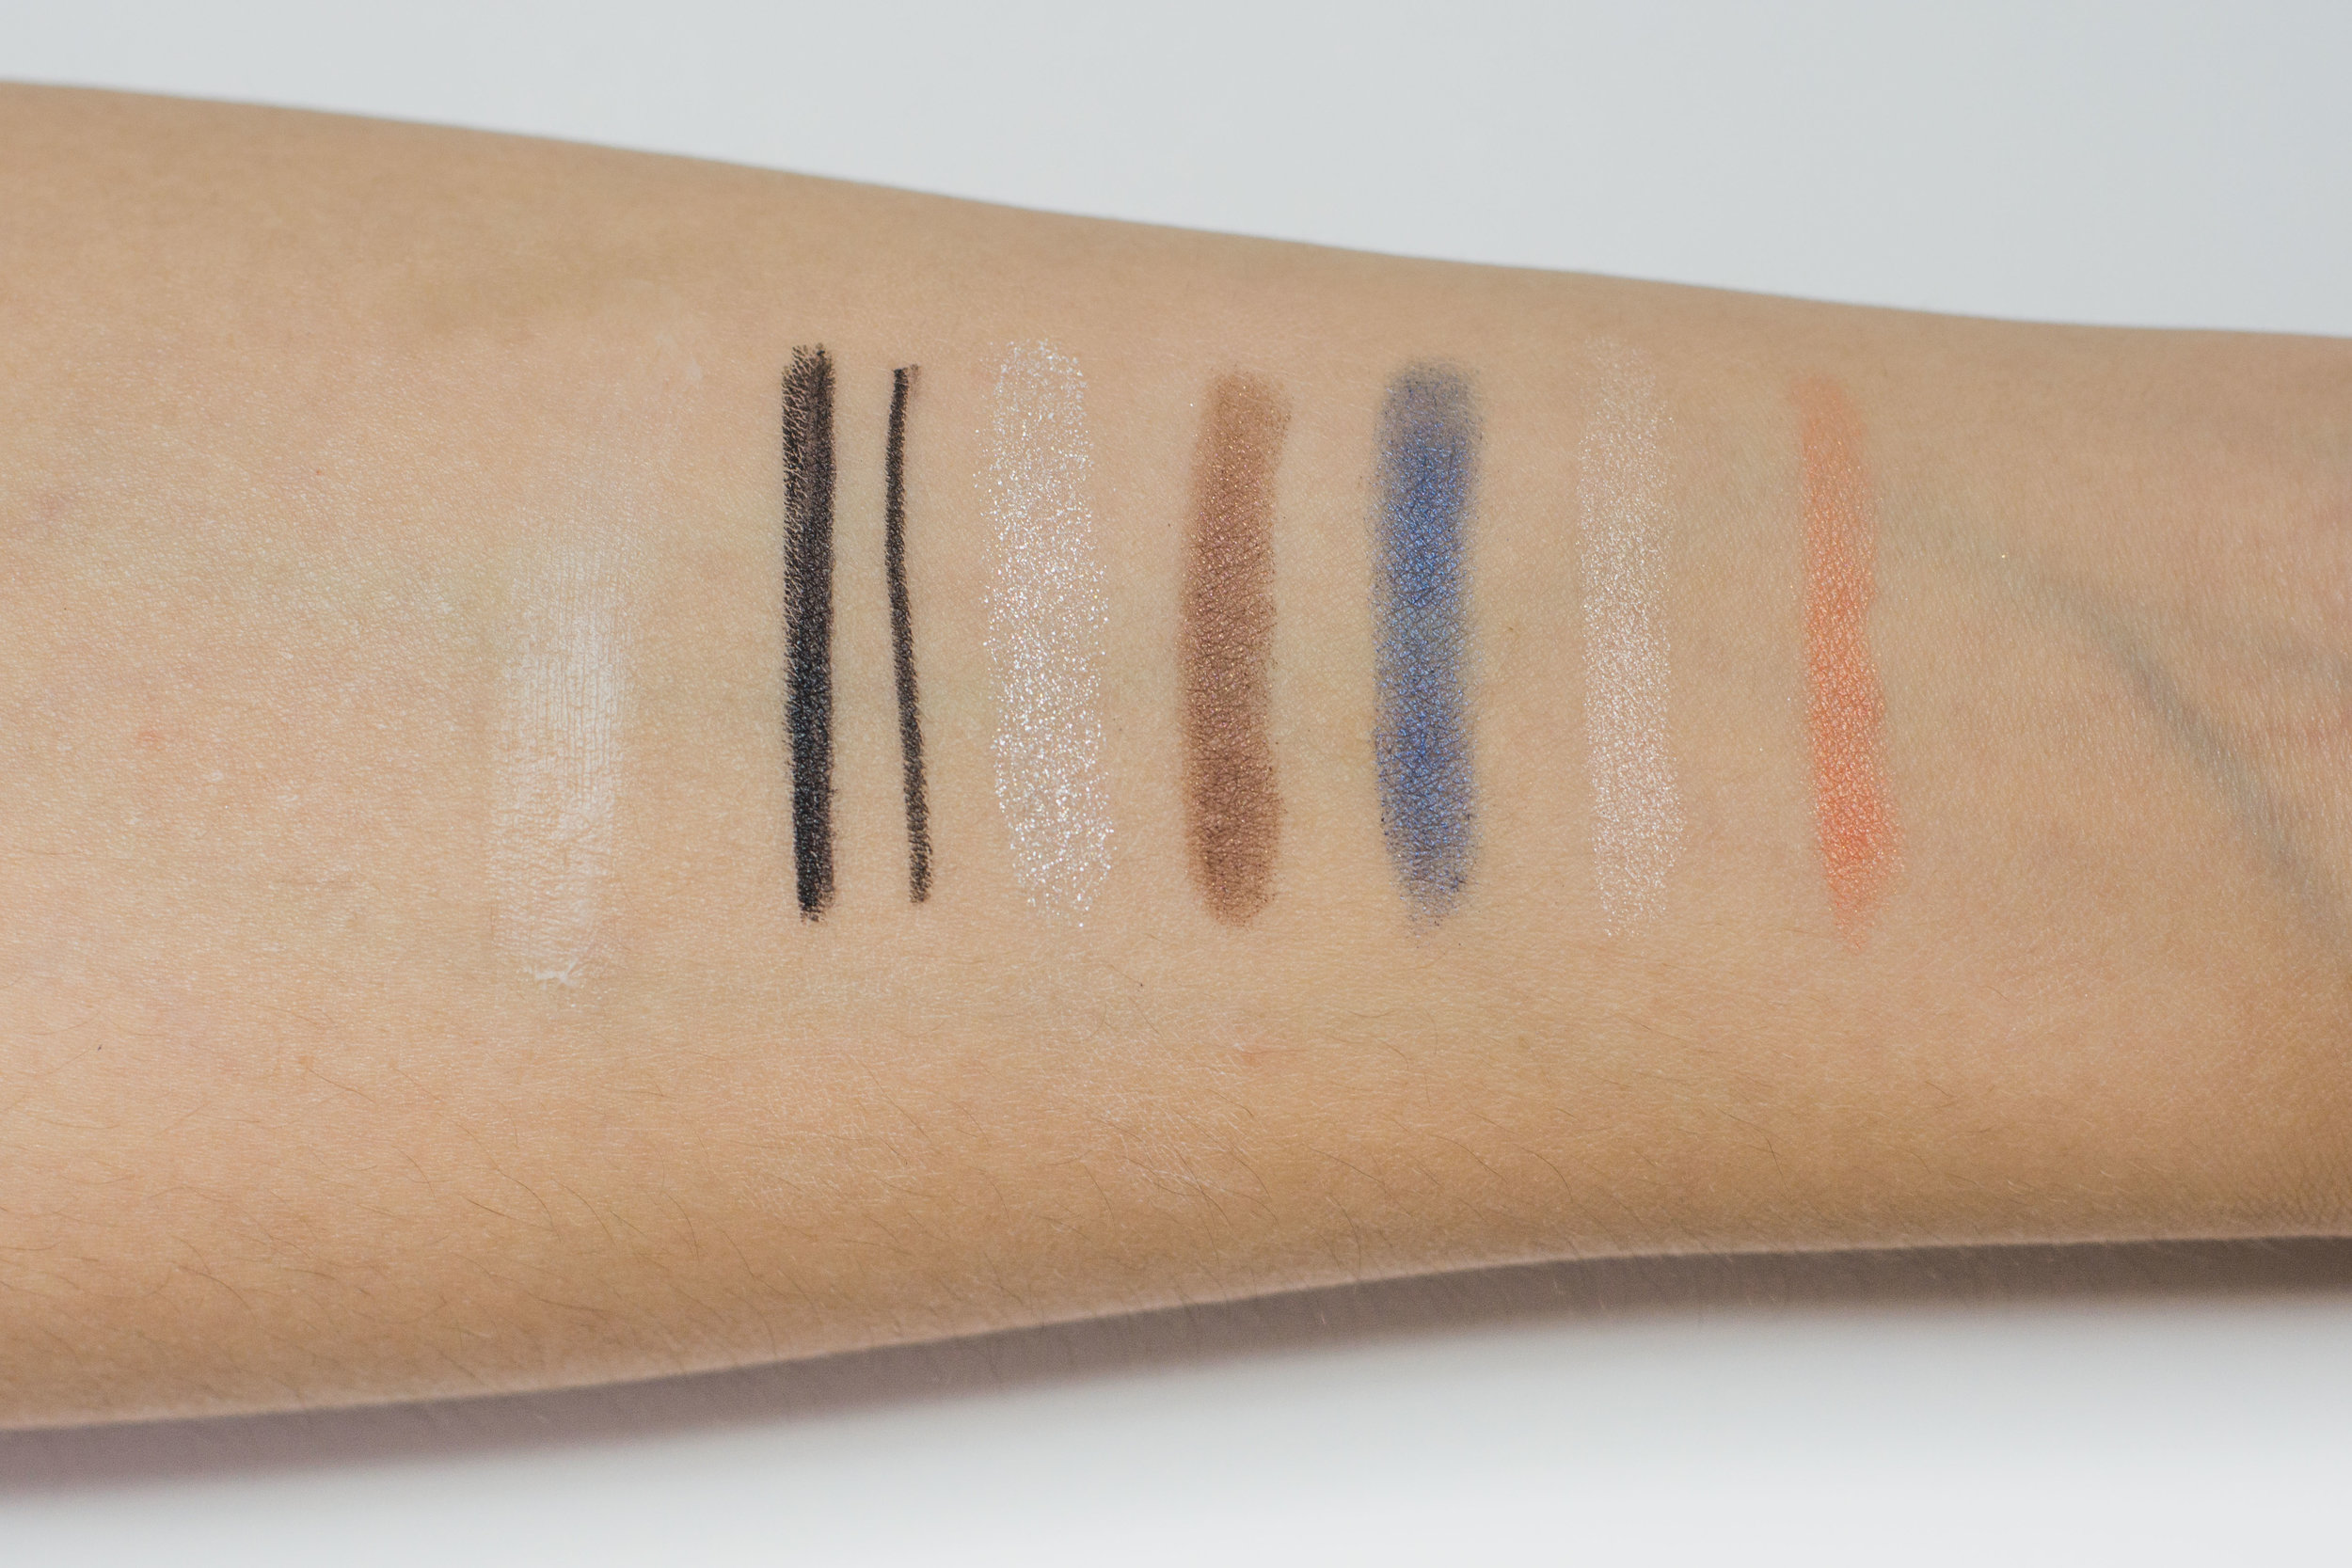 Swatches, from left: Lasting Multi Eyebase, Creamy Touch Liner in  01 Deep Black , and Perfect Styling Eyes #15